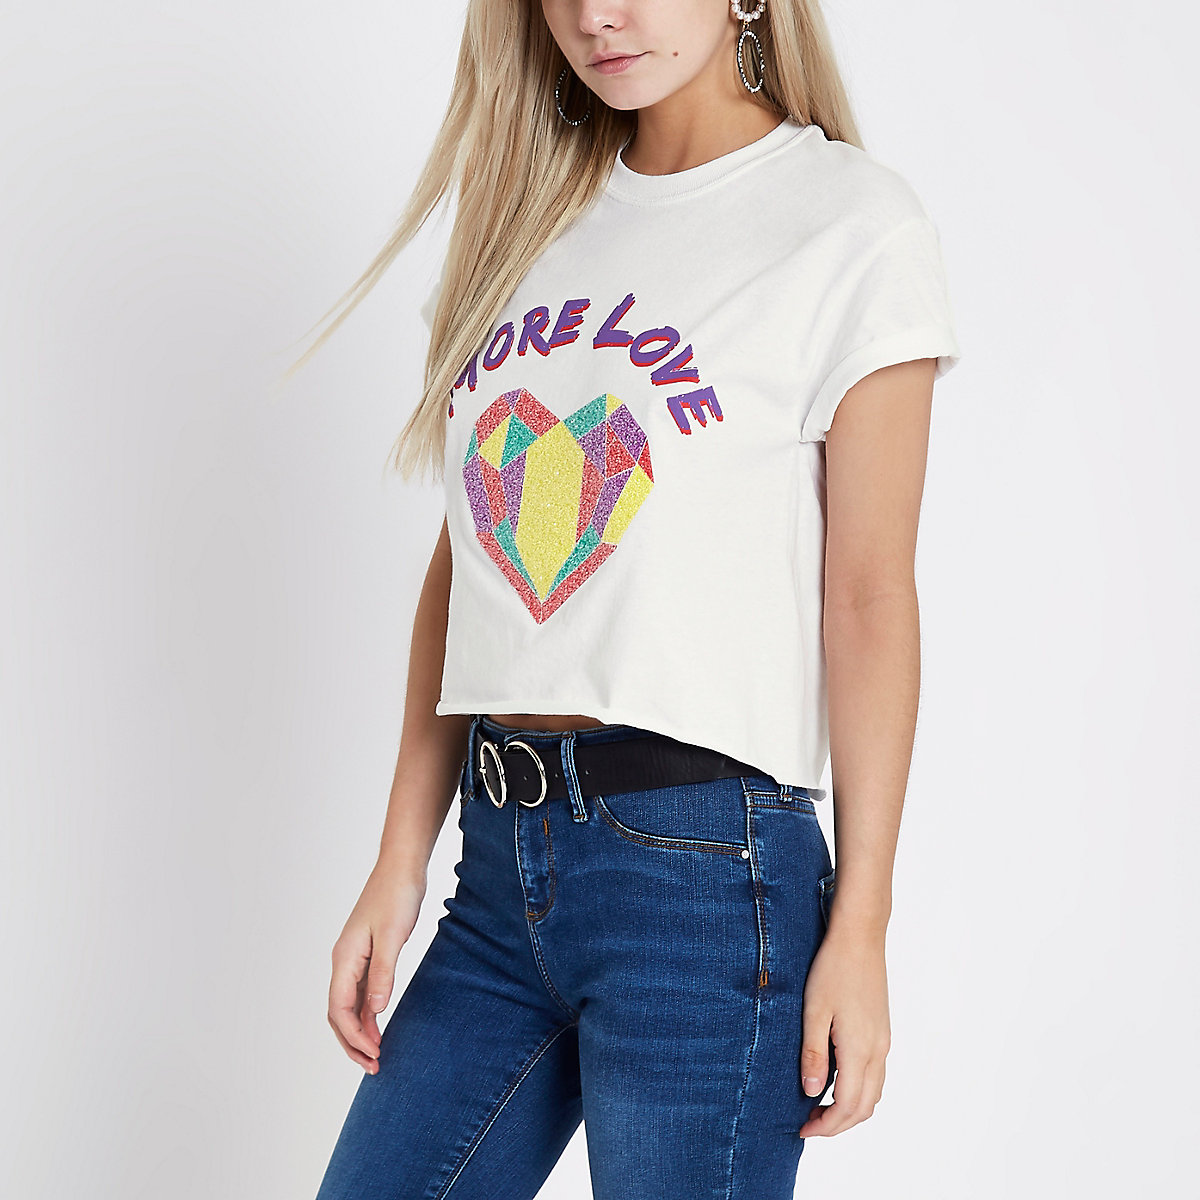 Petite White 'more love' heart print T-shirt